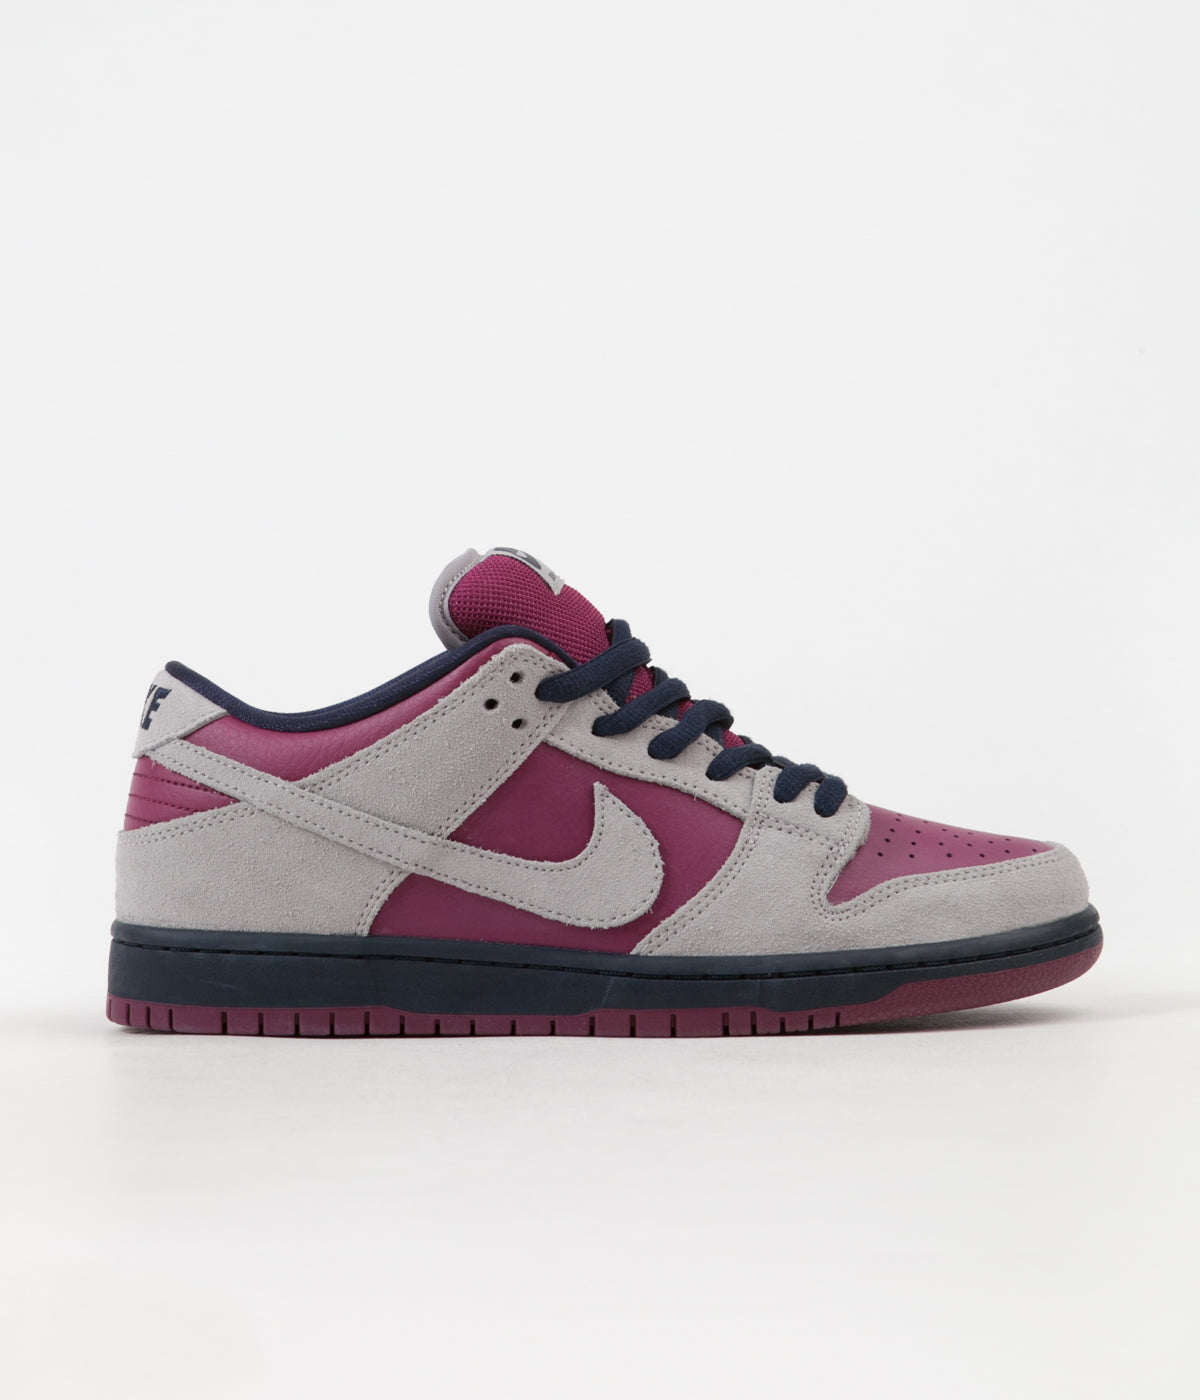 newest collection 1535a 3cced Nike SB Dunk Low Pro Shoes - Atmosphere Grey / Atmosphere ...